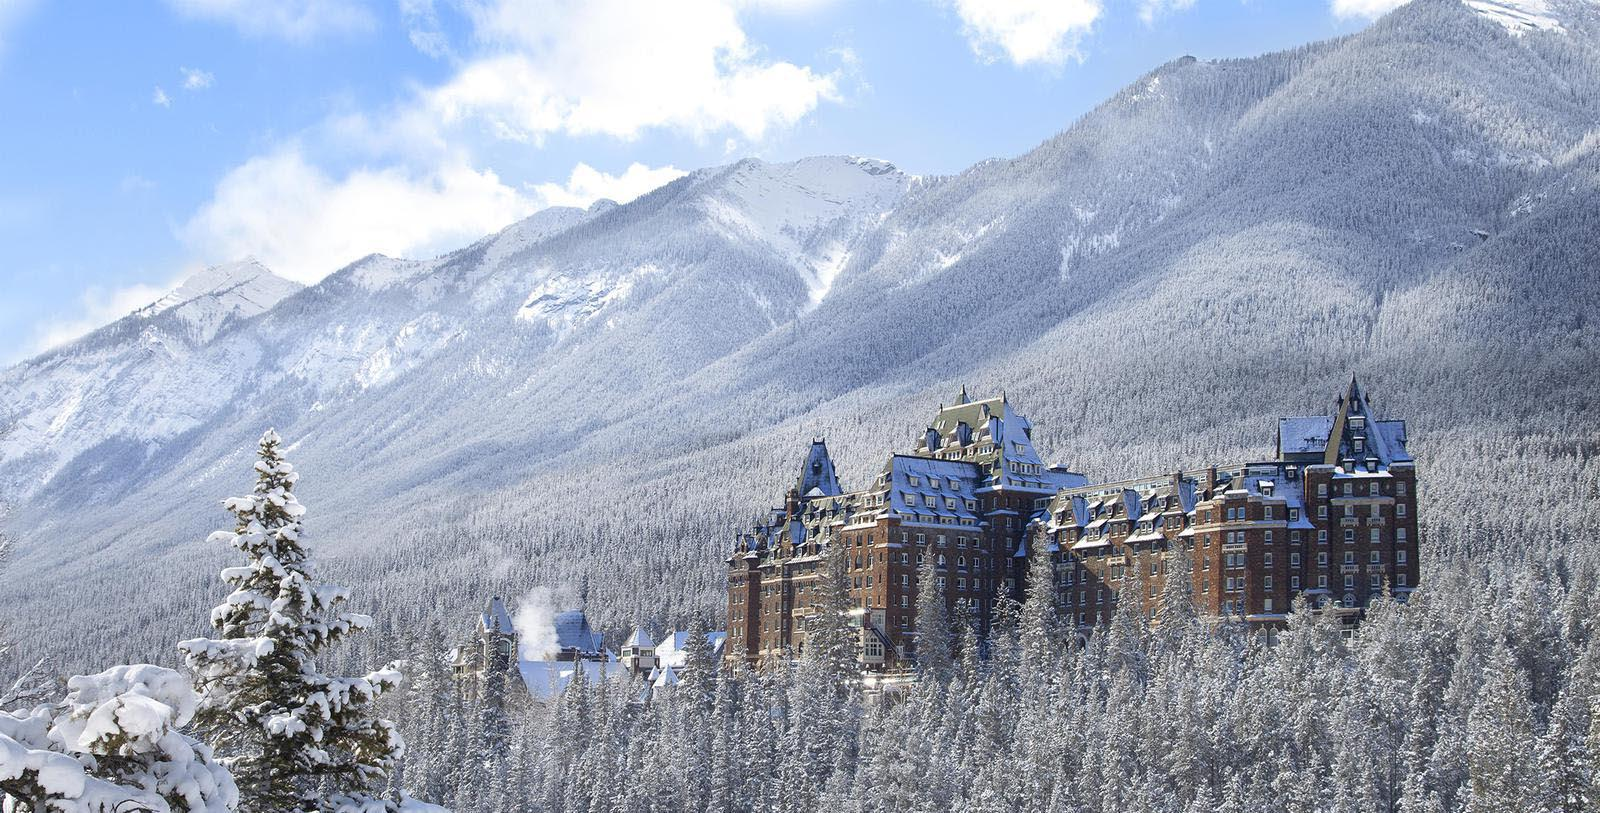 Image of hotel exterior Fairmont Banff Springs, 1888, Member of Historic Hotels Worldwide, in Banff, Alberta, Canada, Overview